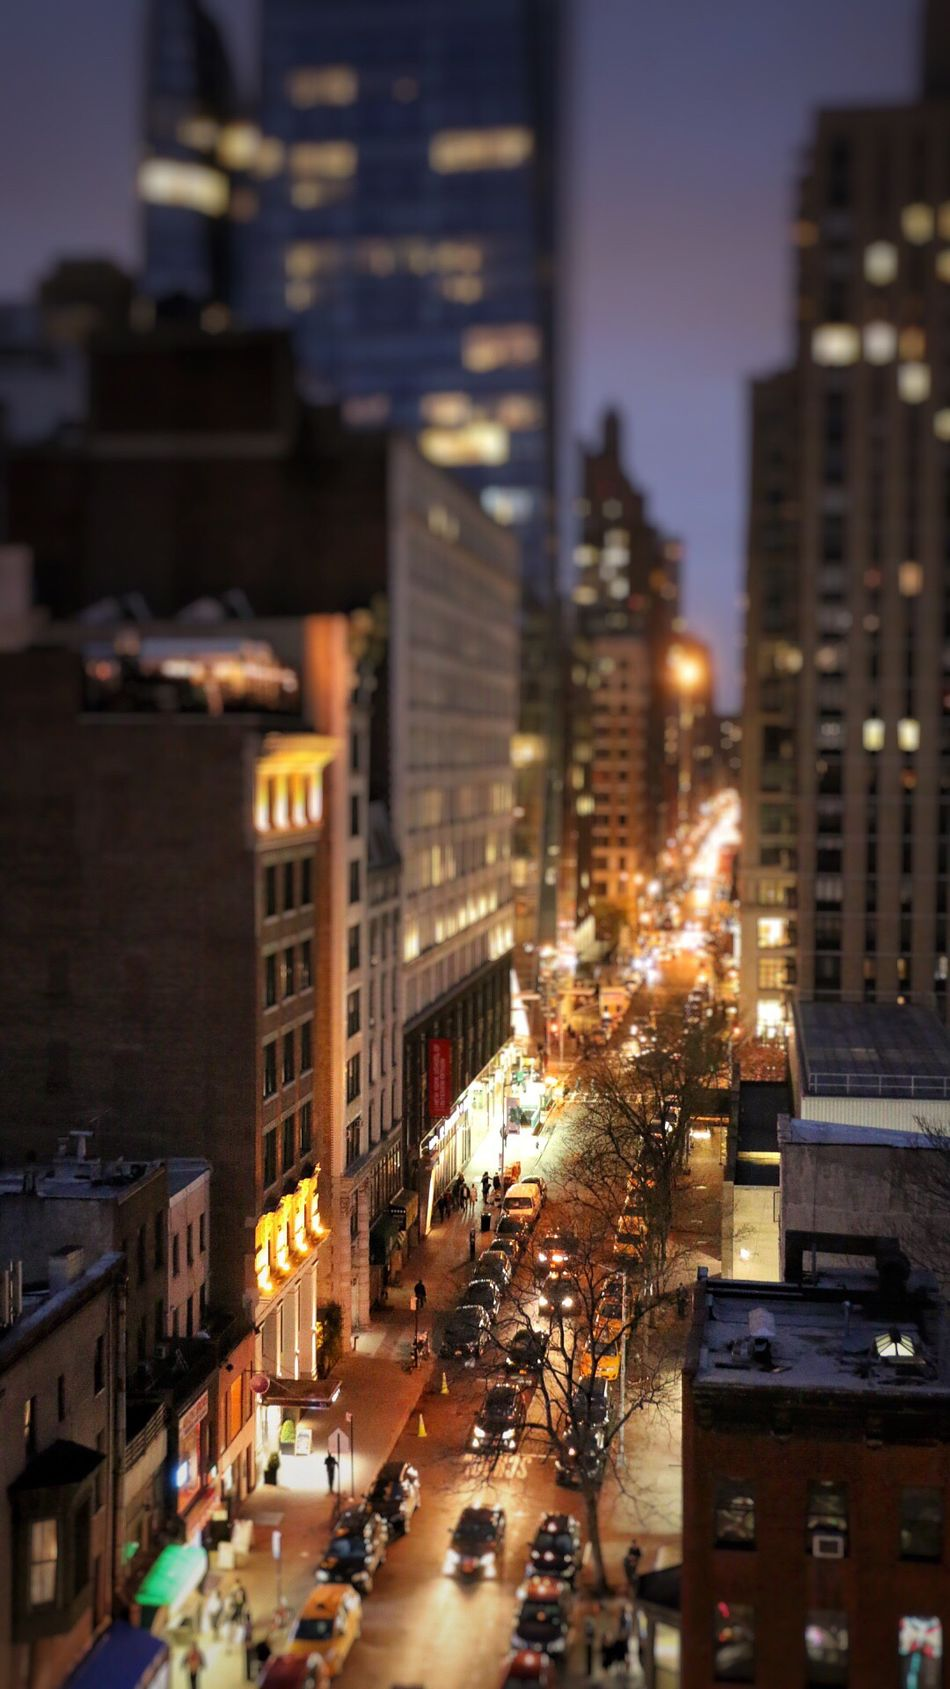 Streetphotography Miniature nyc Architecture Street Illuminated City Night Newyork New York New York City NYC Photography NYC NYC Street Photography Light And Shadow Building Exterior City Street High Angle View Street Light Popular Street Photography Travel Destinations Tourism Cityscape Skyscraper Architecture